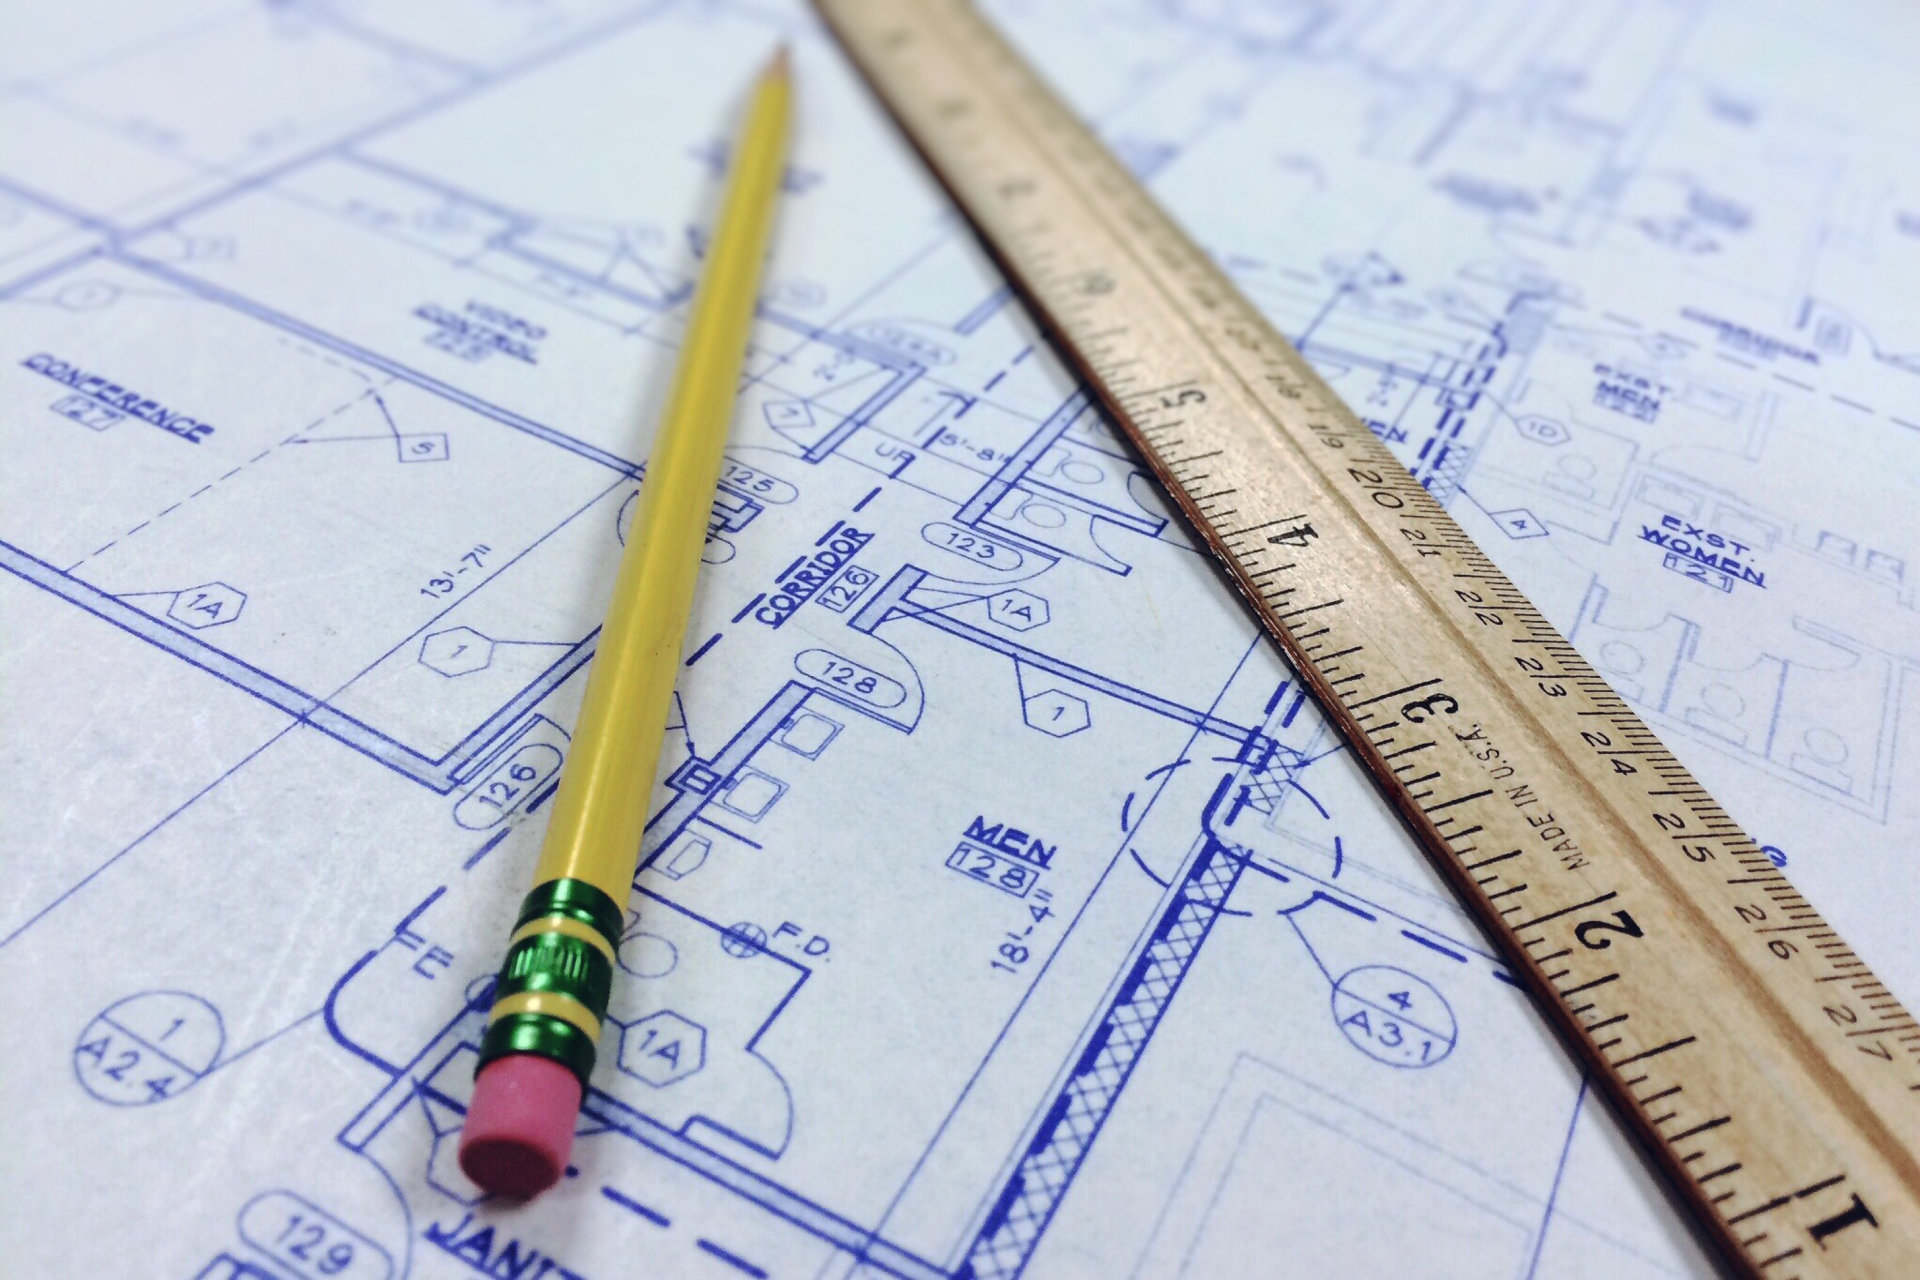 About House Plan Design & Drafting Services